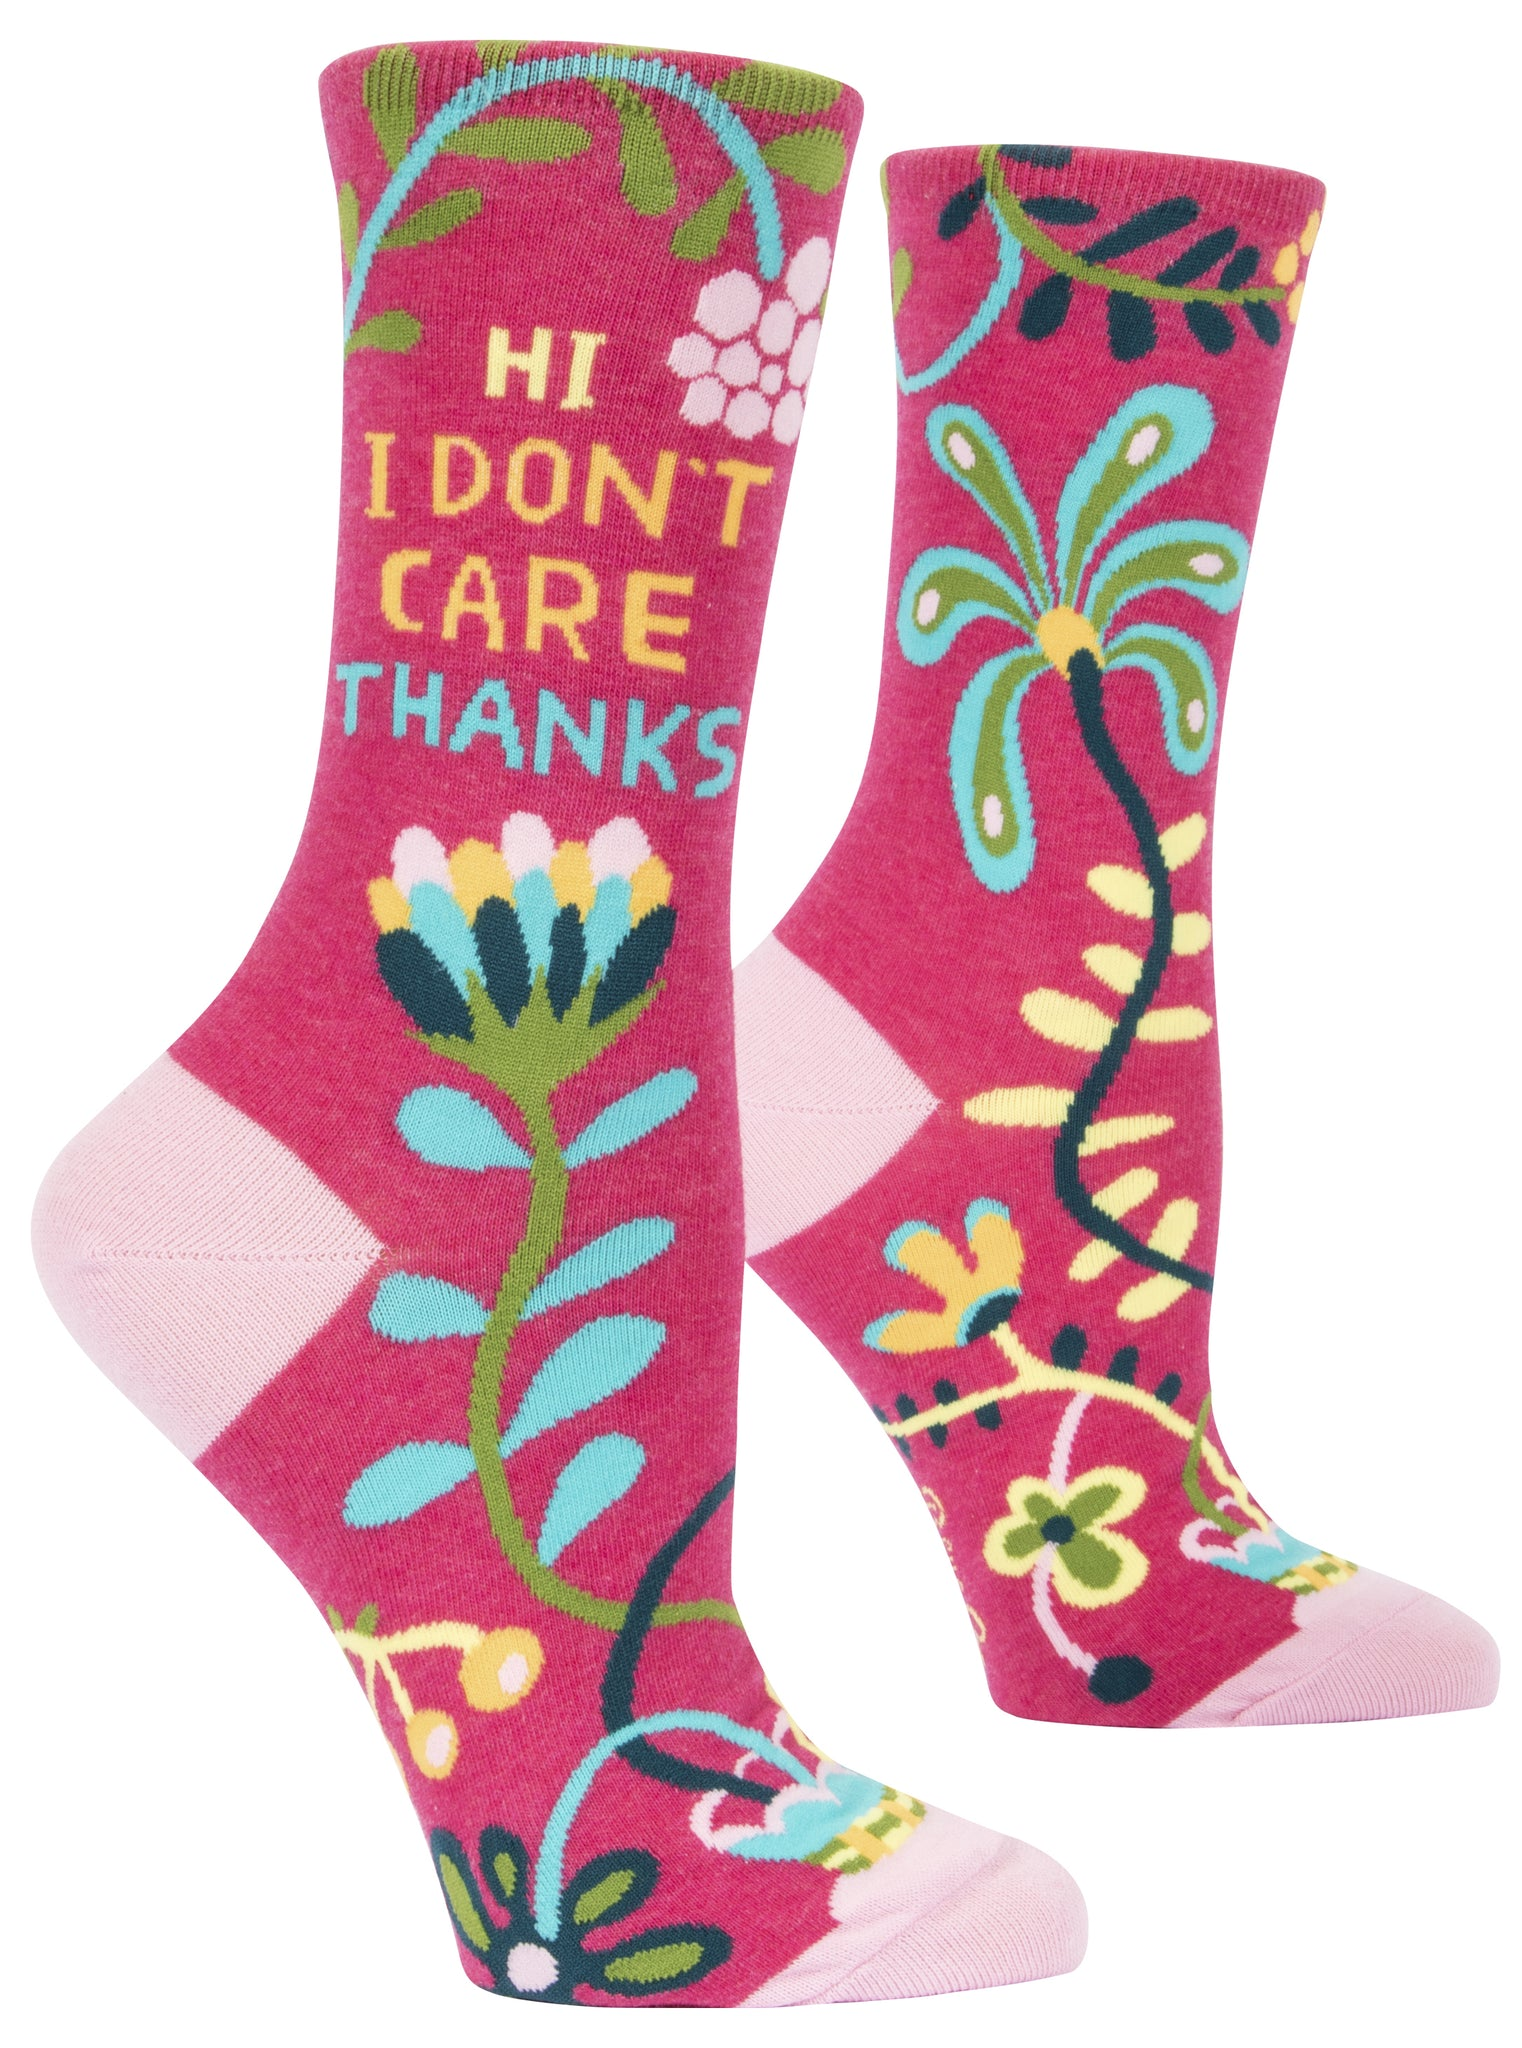 Women's Socks : Hi, I don't care, thanks.